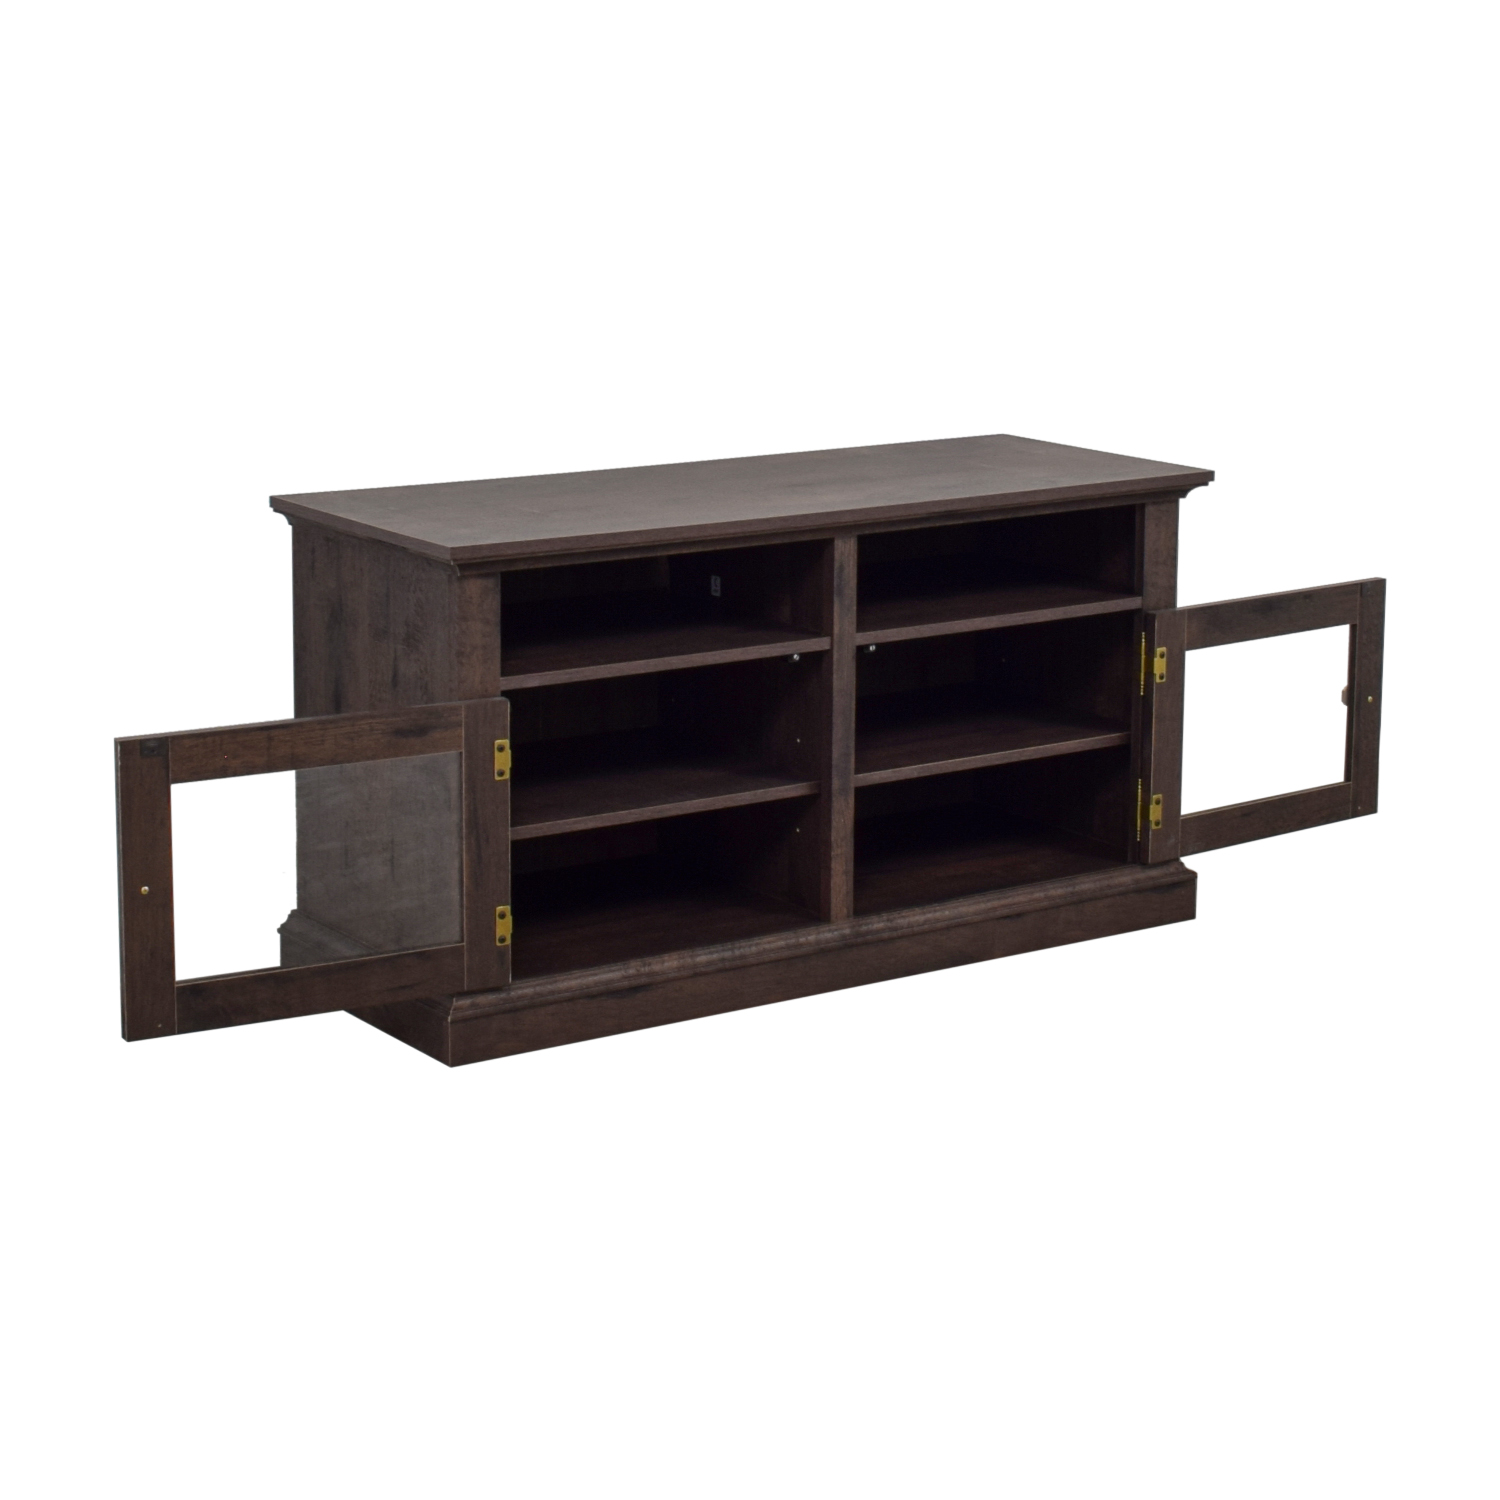 buy Laurel Foundry Laurel Foundry Arvilla Wood and Glass TV Stand online